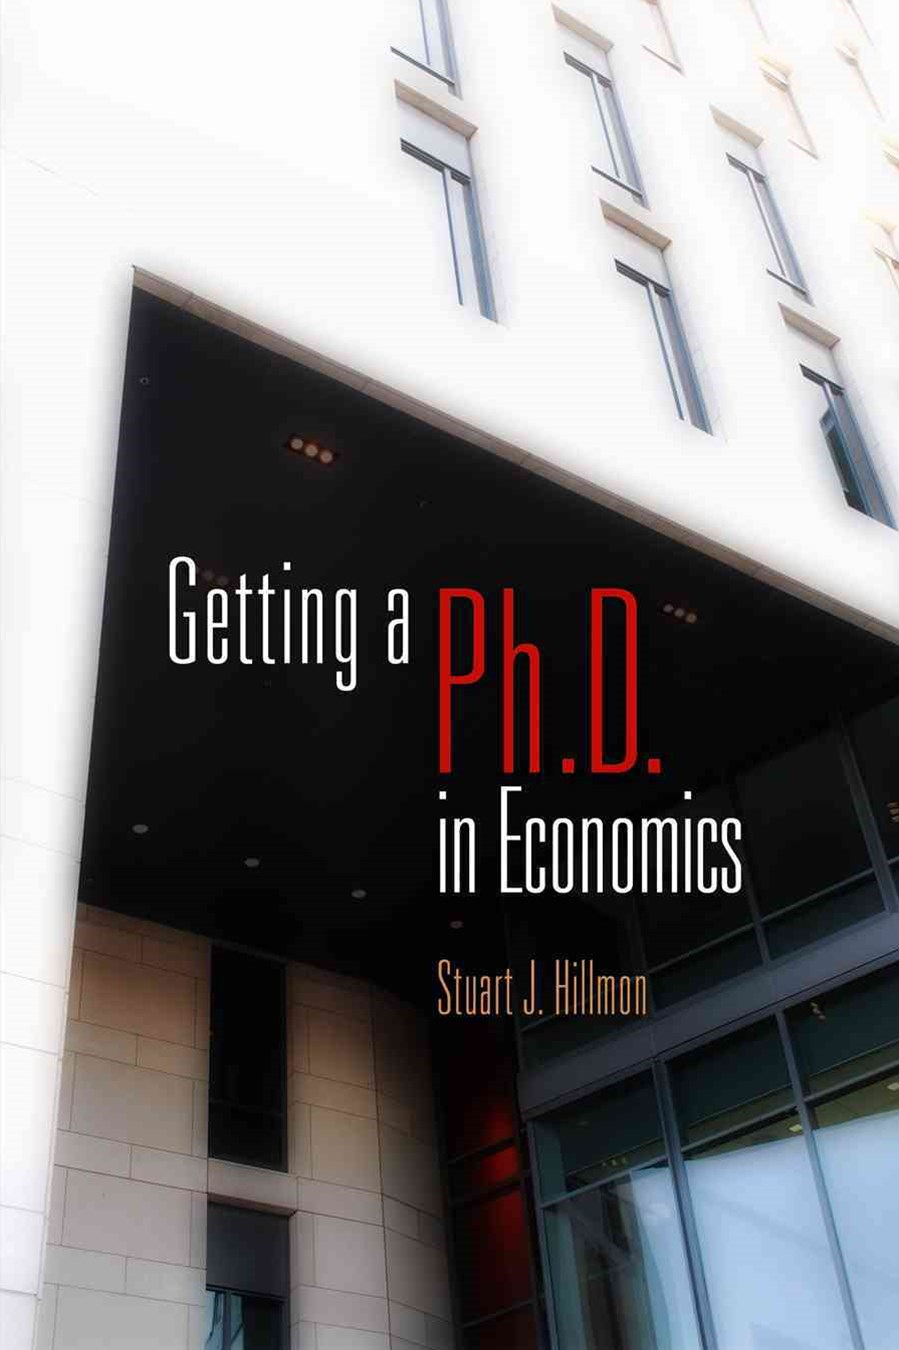 Getting a Ph.D. in Economics